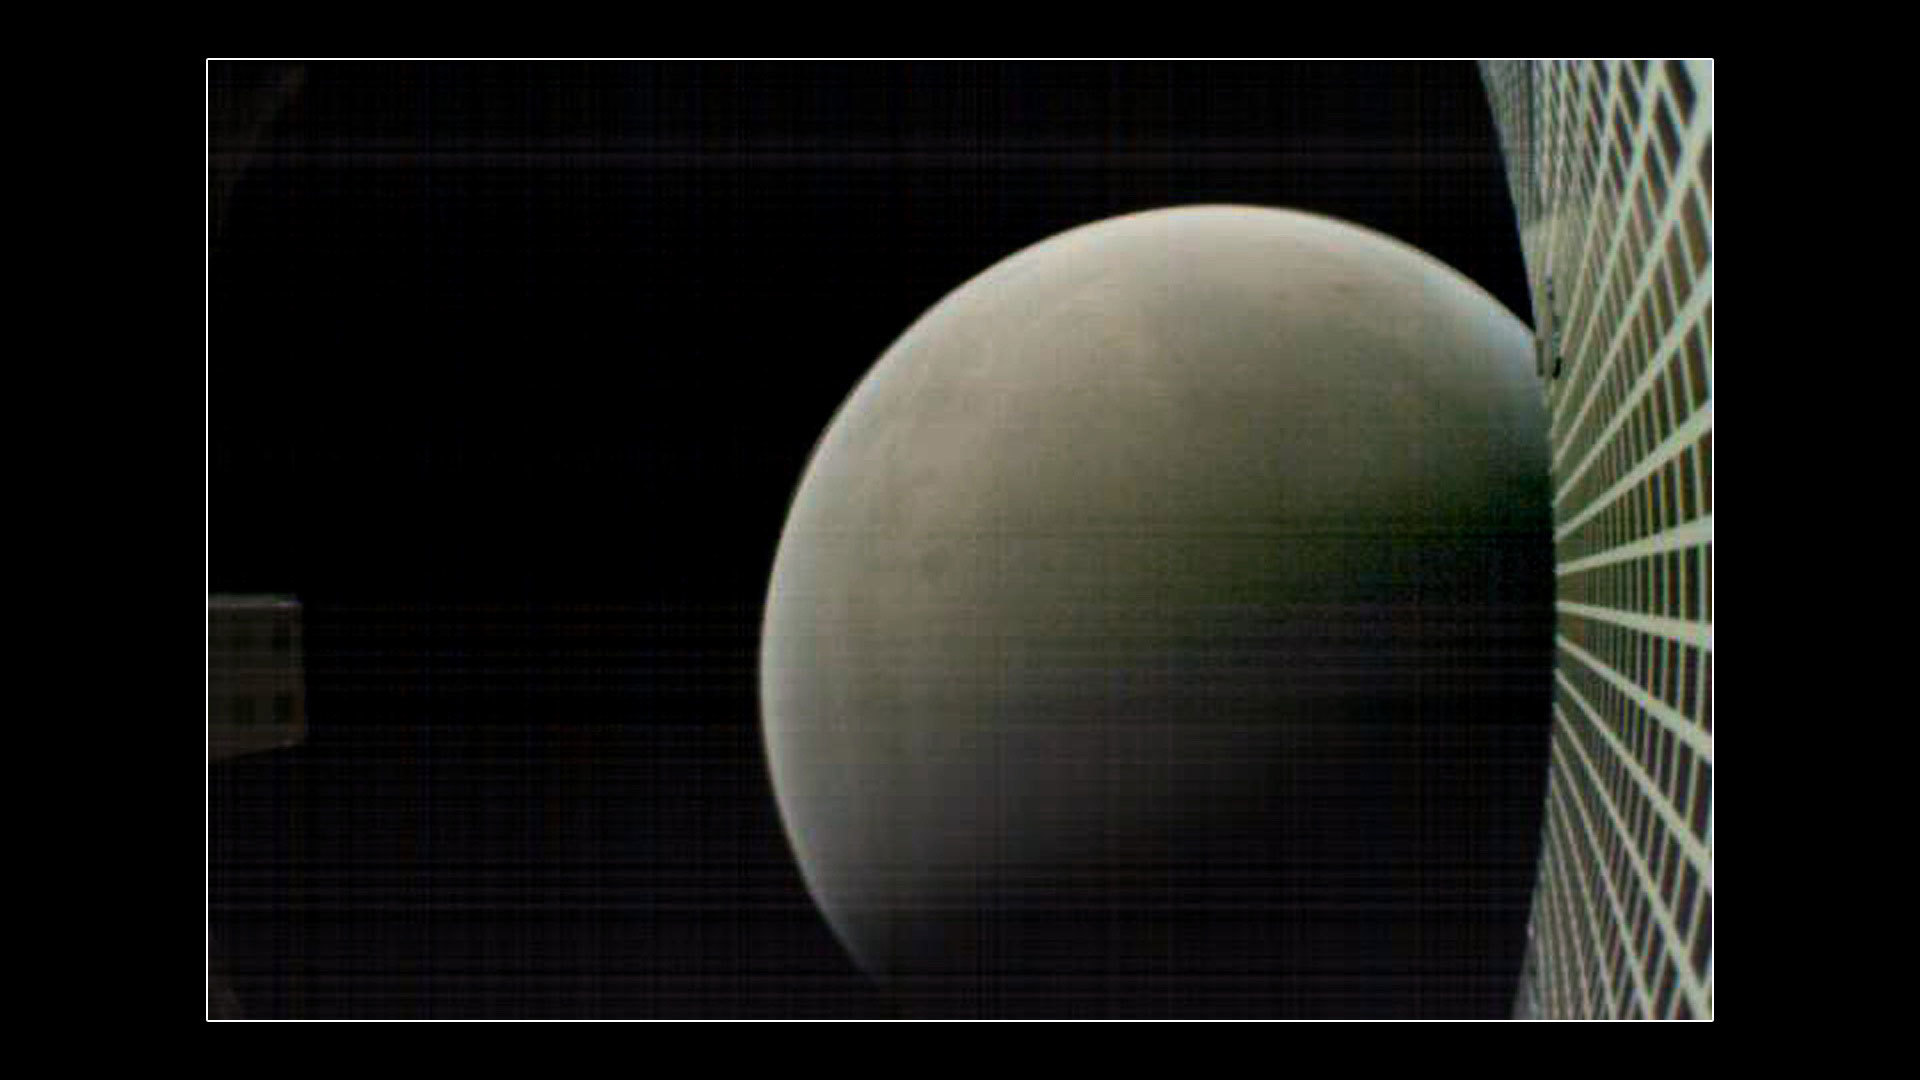 MarCO-B took this image of Mars from about 4,700 miles (7,600 kilometers) away during its flyby of Mars on Nov. 26, 2018.